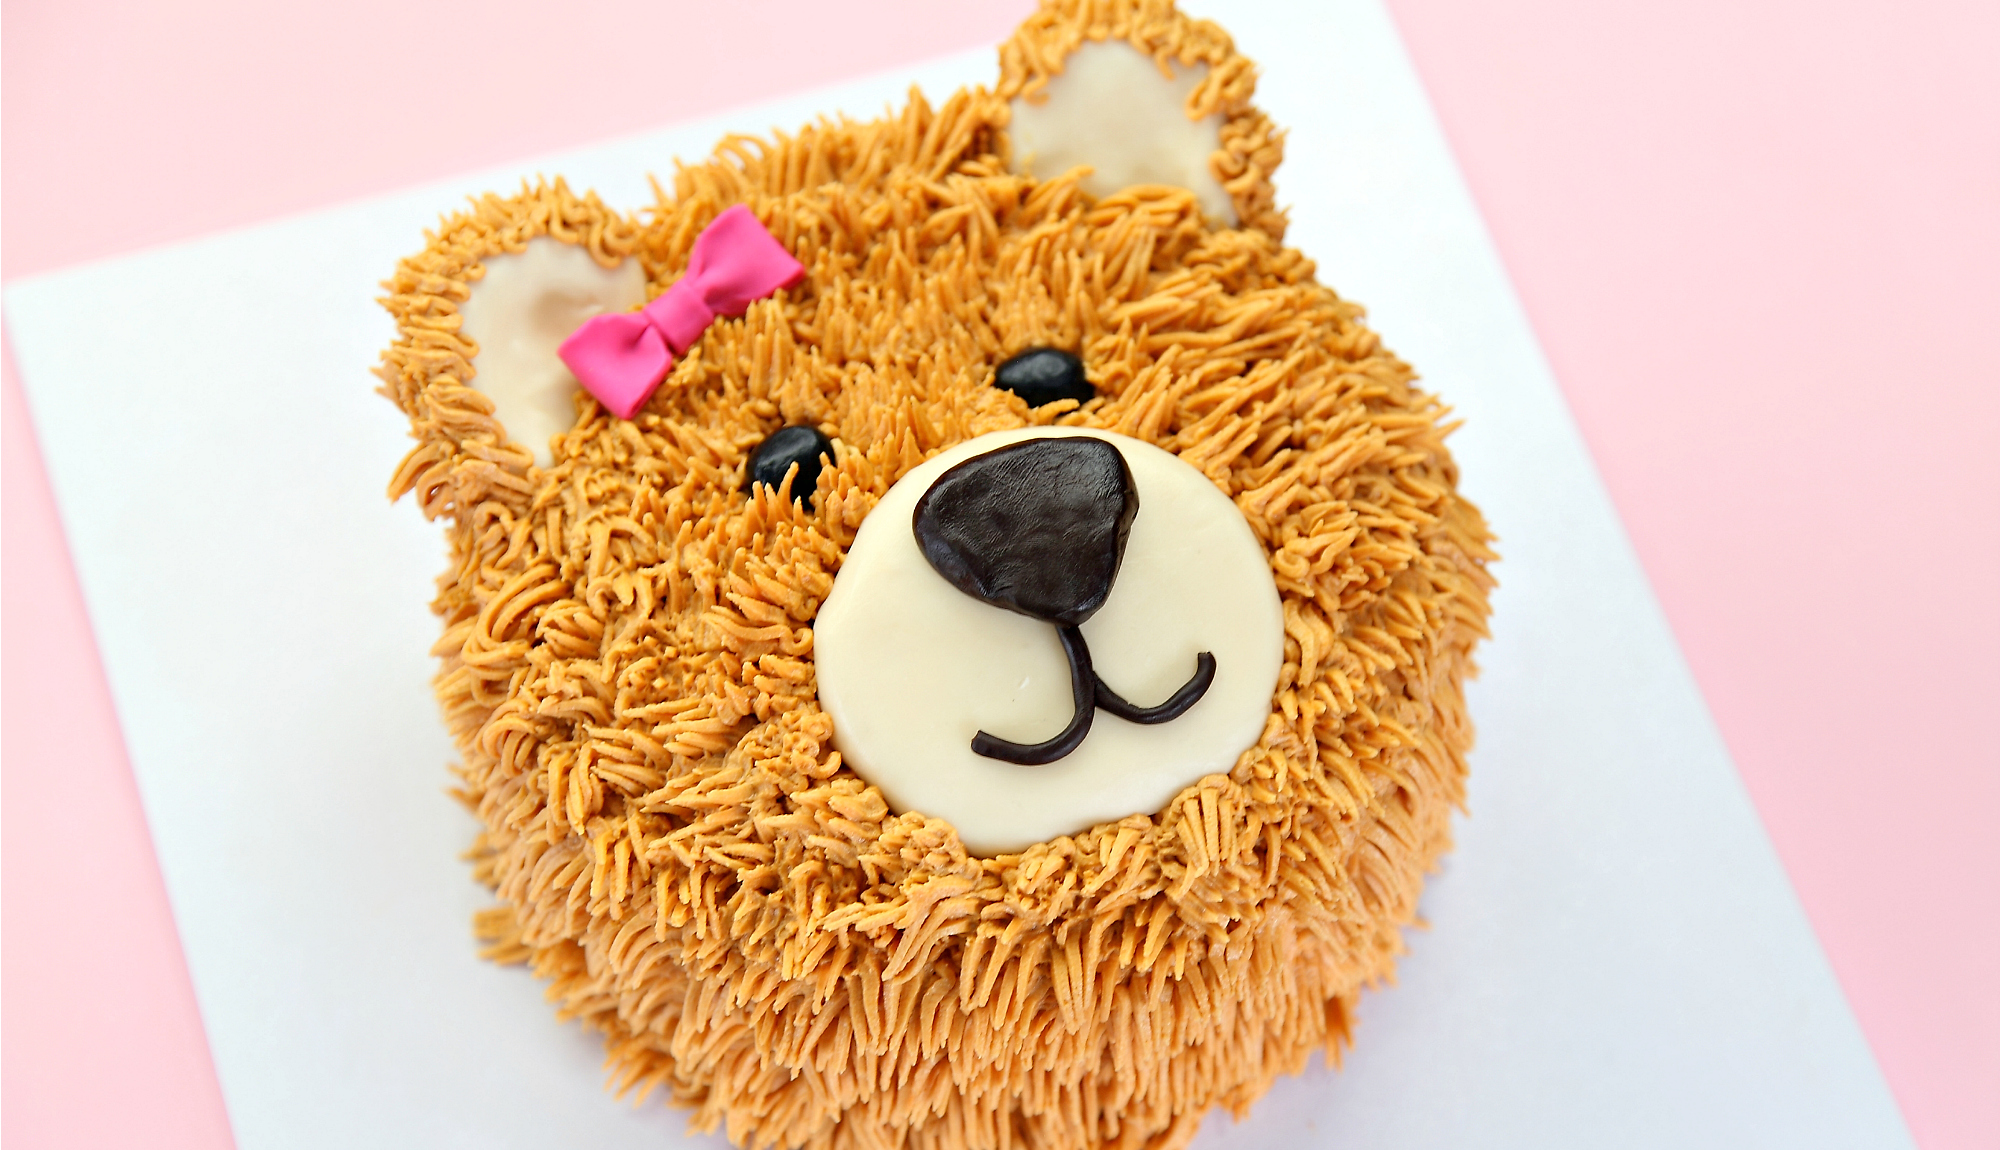 Cake Design Teddy Bear : Teddy Bear Cake - Cake Style